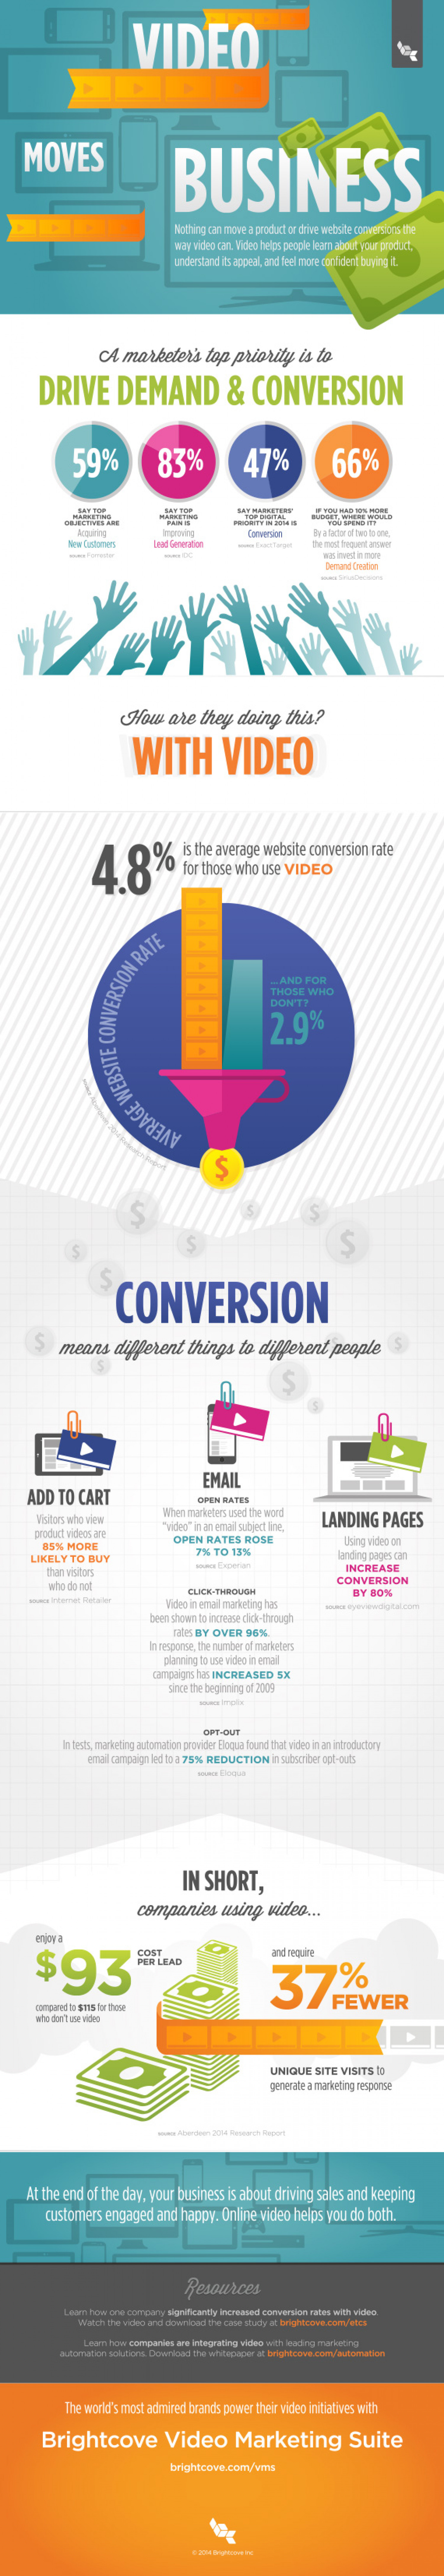 Video Moves Business Infographic